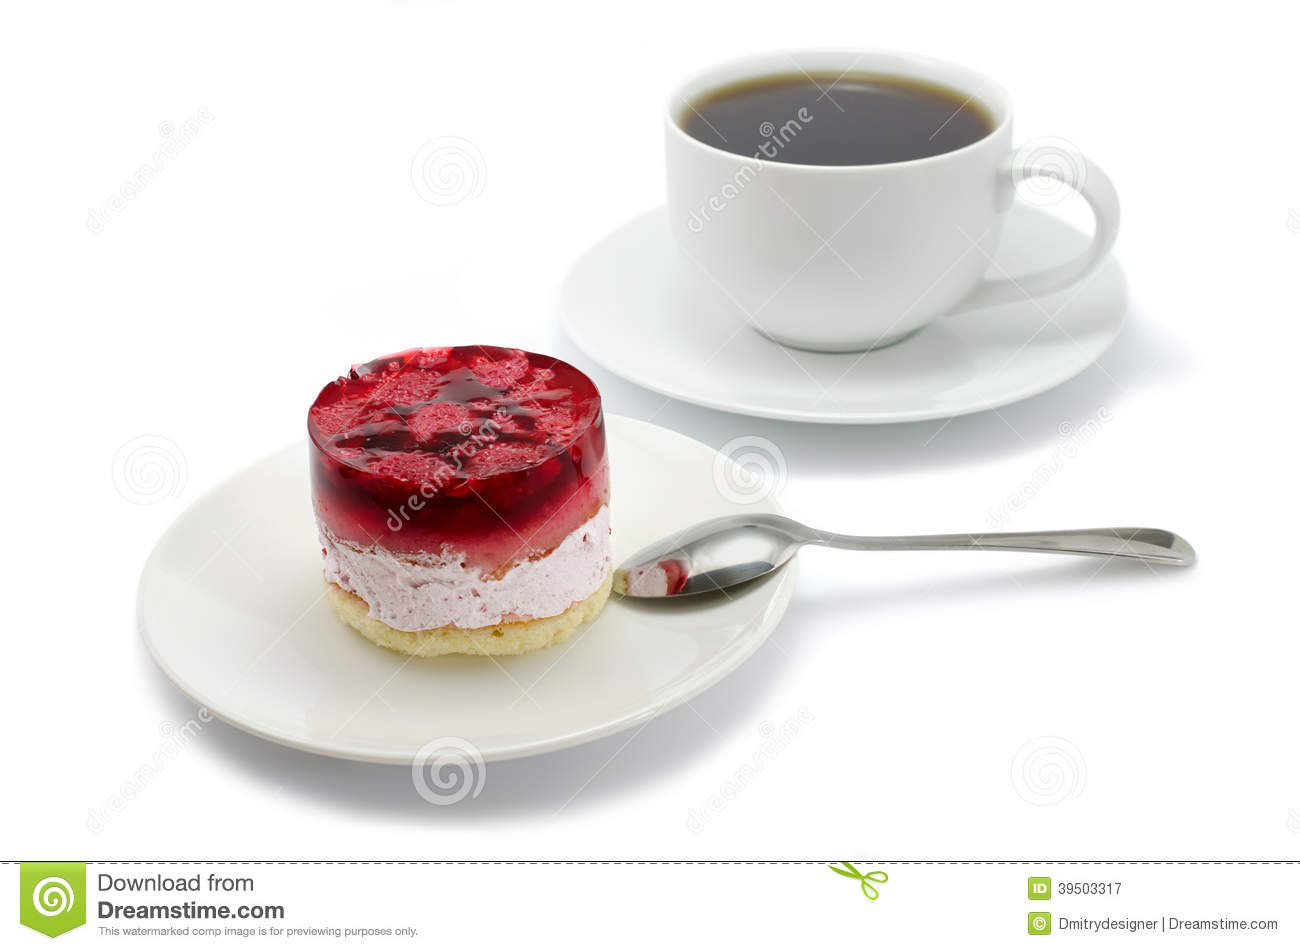 Cake with raspberries and a cup of tea